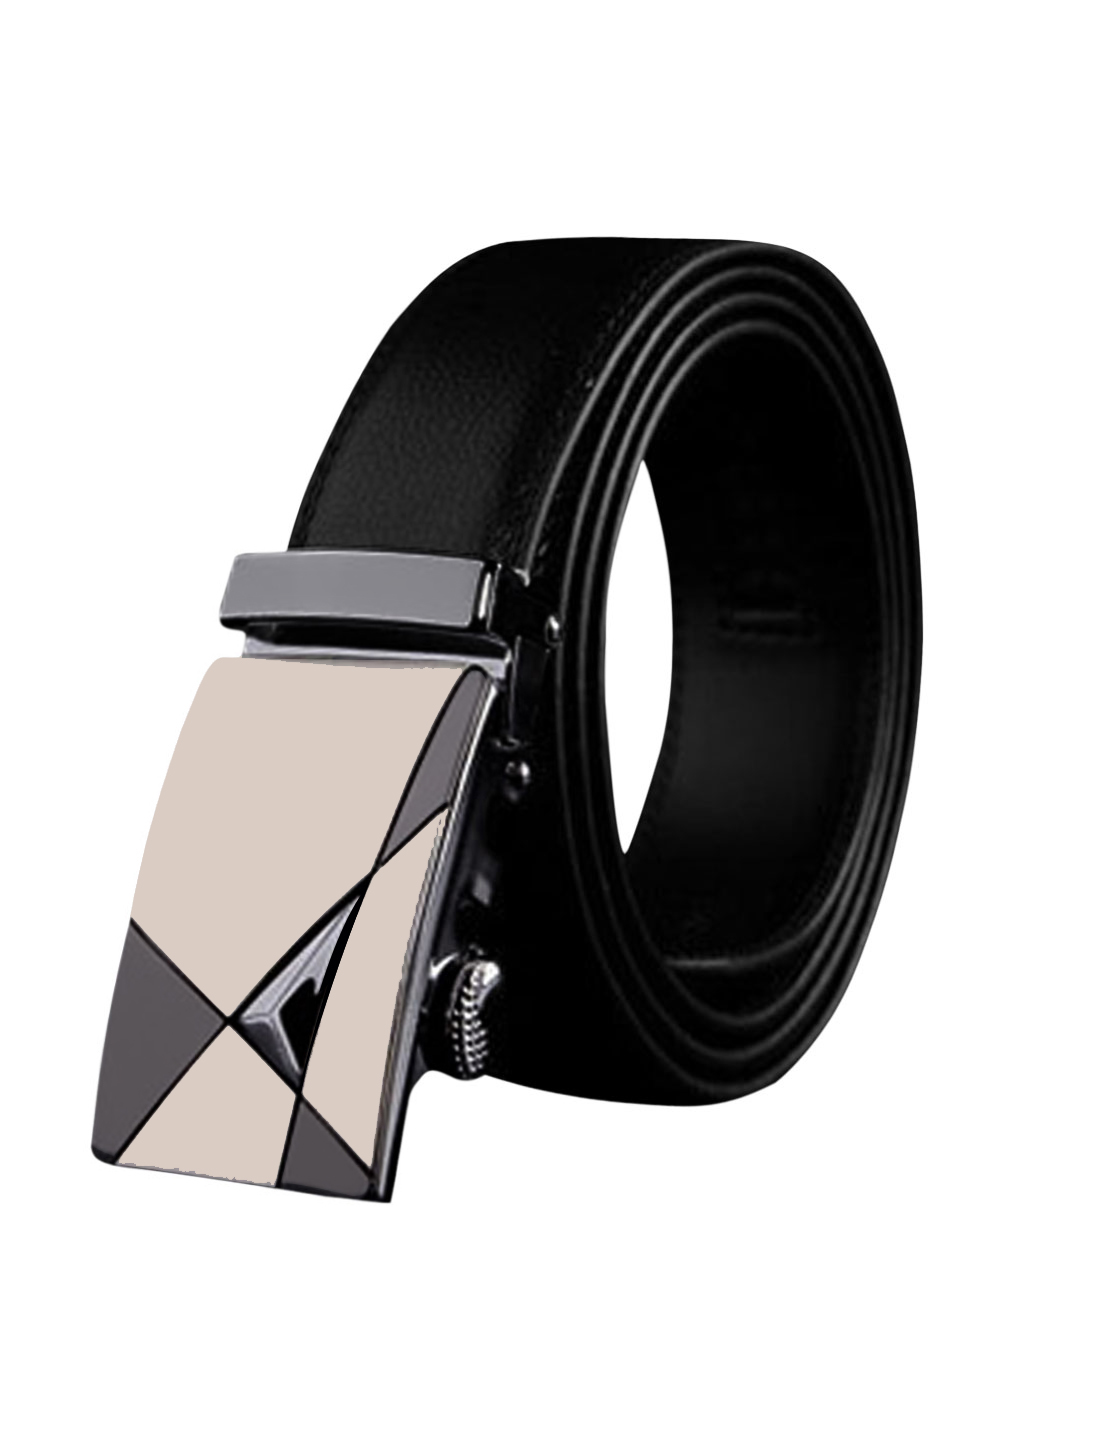 Men Slide Buckle Adjustable Holeless PU Ratchet Belt Black 110CM